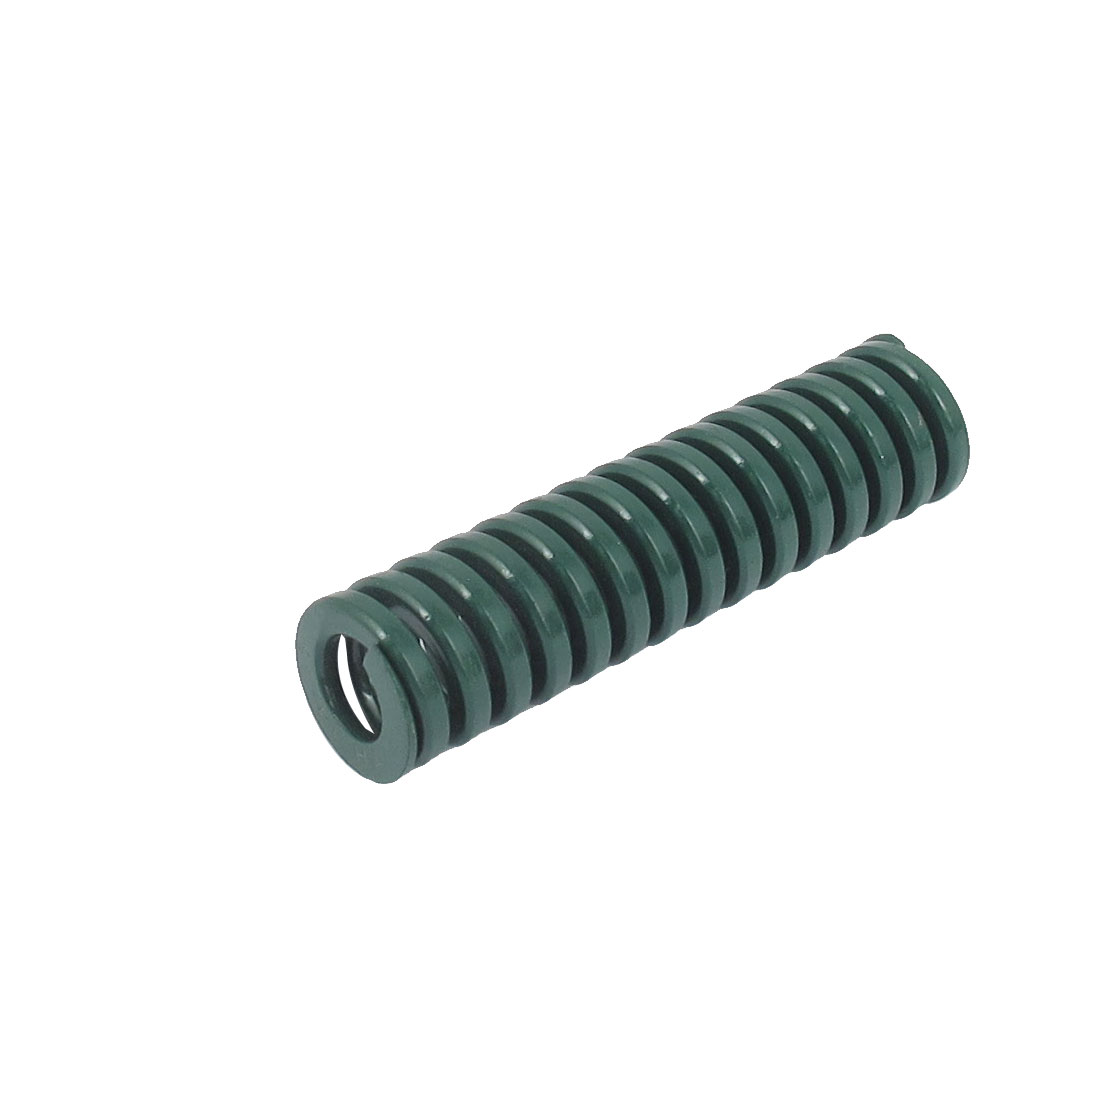 14mmx55mm Chromium Alloy Steel Heavy Load Die Spring Green